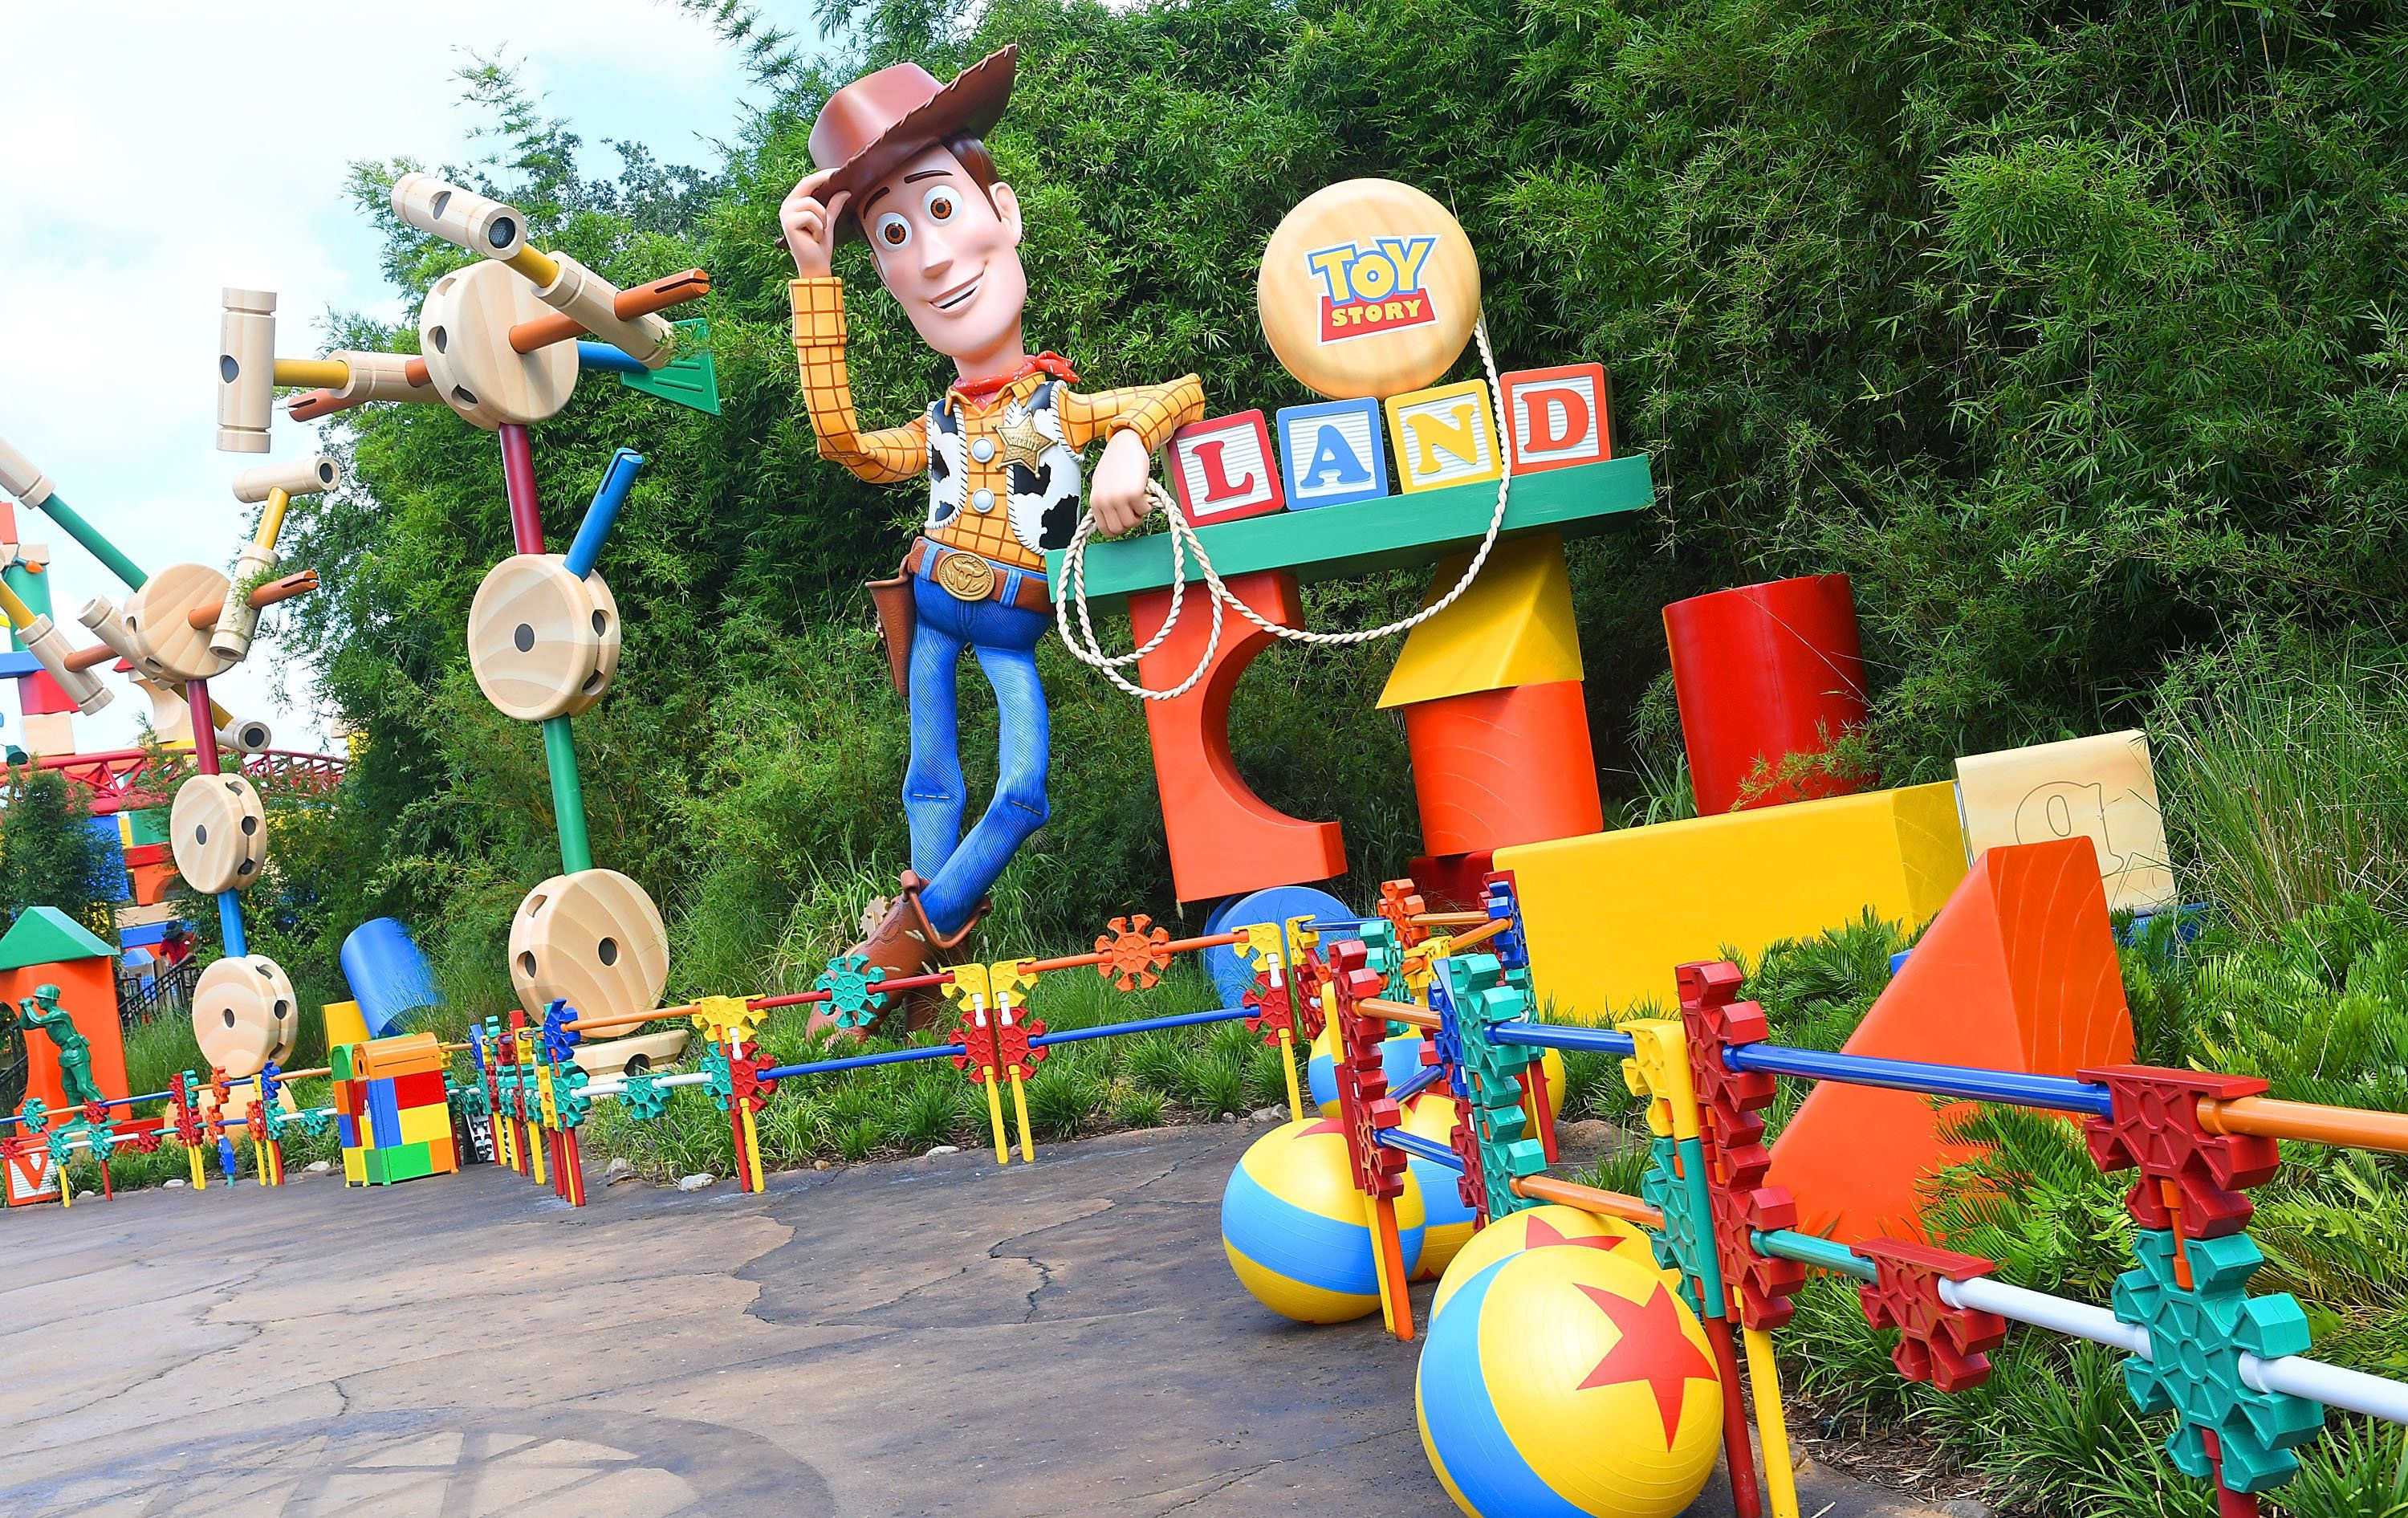 Here's A Look At Disney World's Toy Story